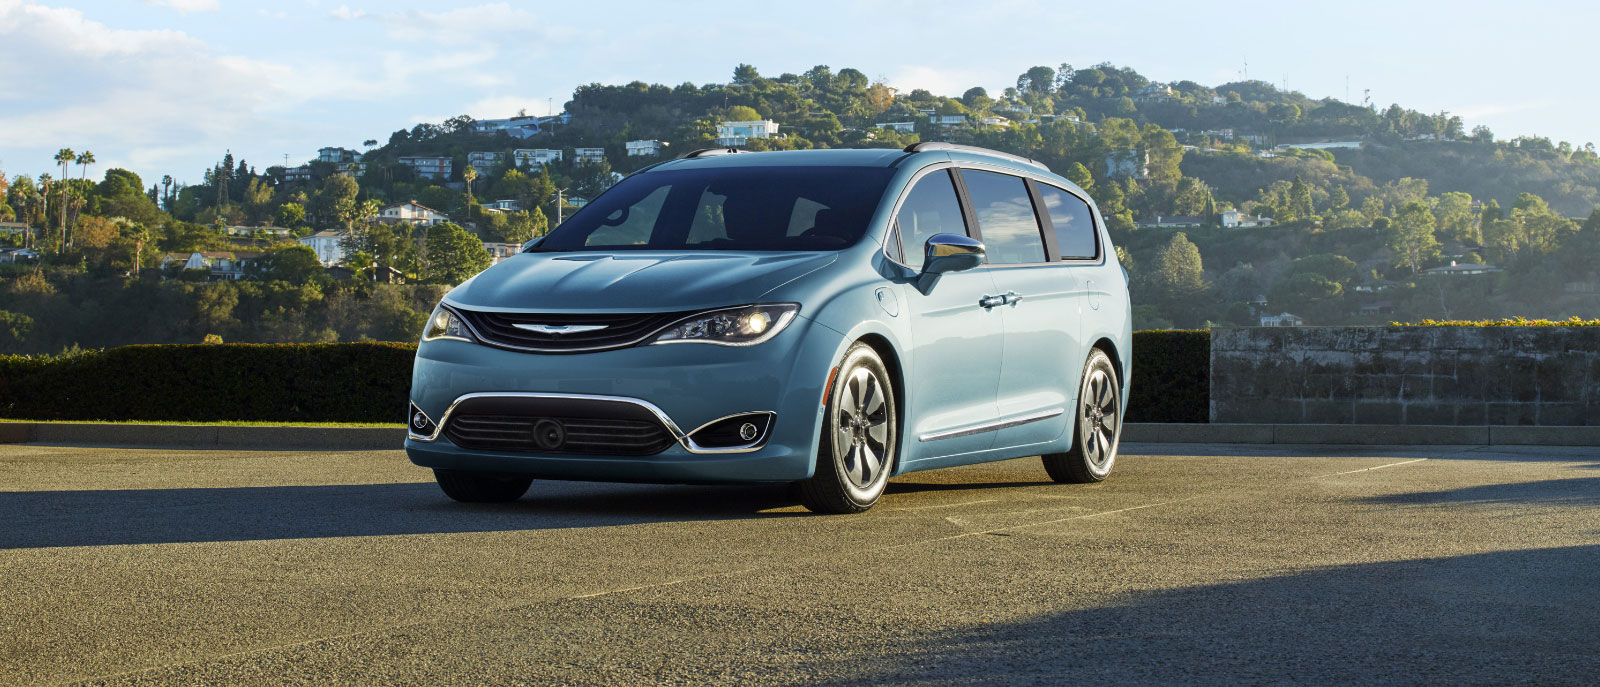 2017 Pacifica Touring Blue Exterior